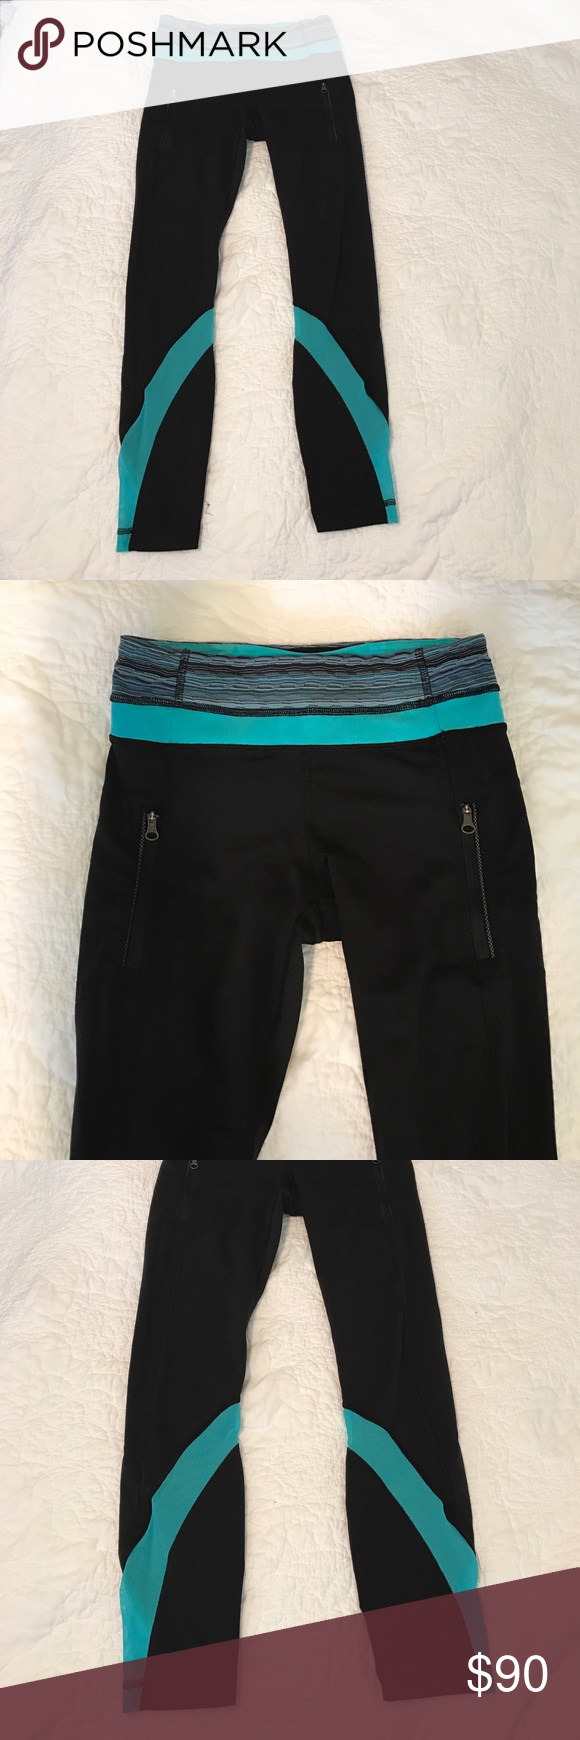 Lululemon inspire tight Lightly used condition, only worn once or twice. No damage or pilling. No trades. 7/8 length lululemon athletica Pants